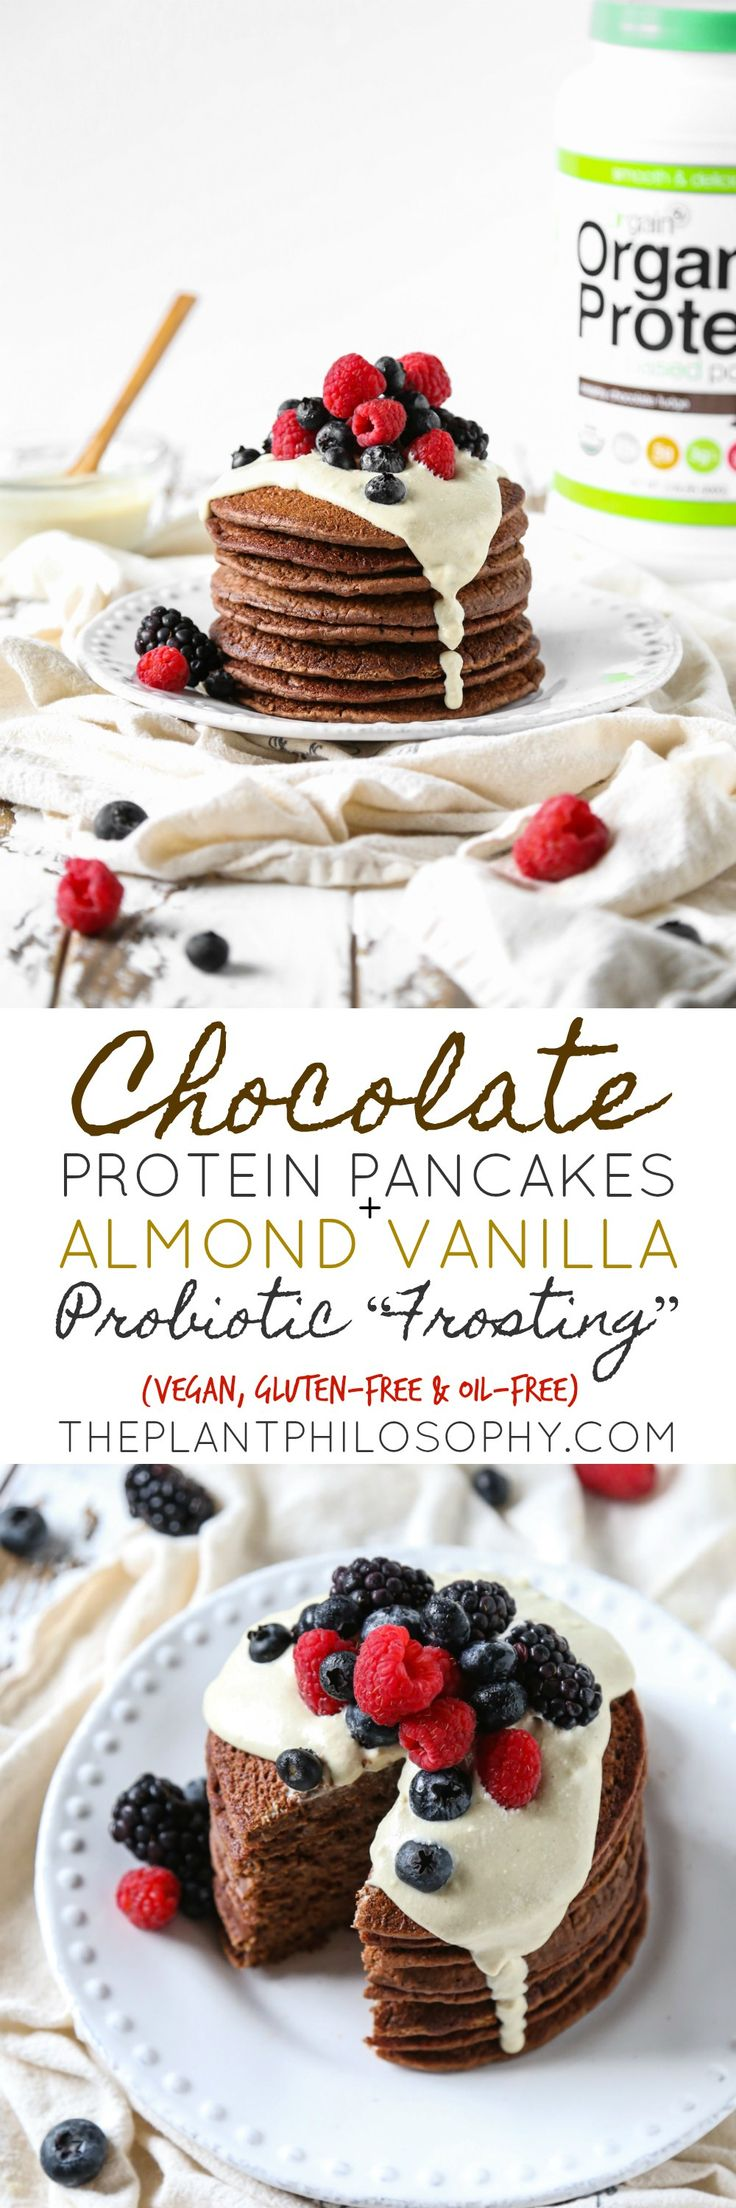 """Gluten-Free Chocolate Protein Pancakes + Almond Vanilla Probiotic """"Frosting""""   Vegan, Oil-Free & Soy-Free   The Plant Philosophy"""